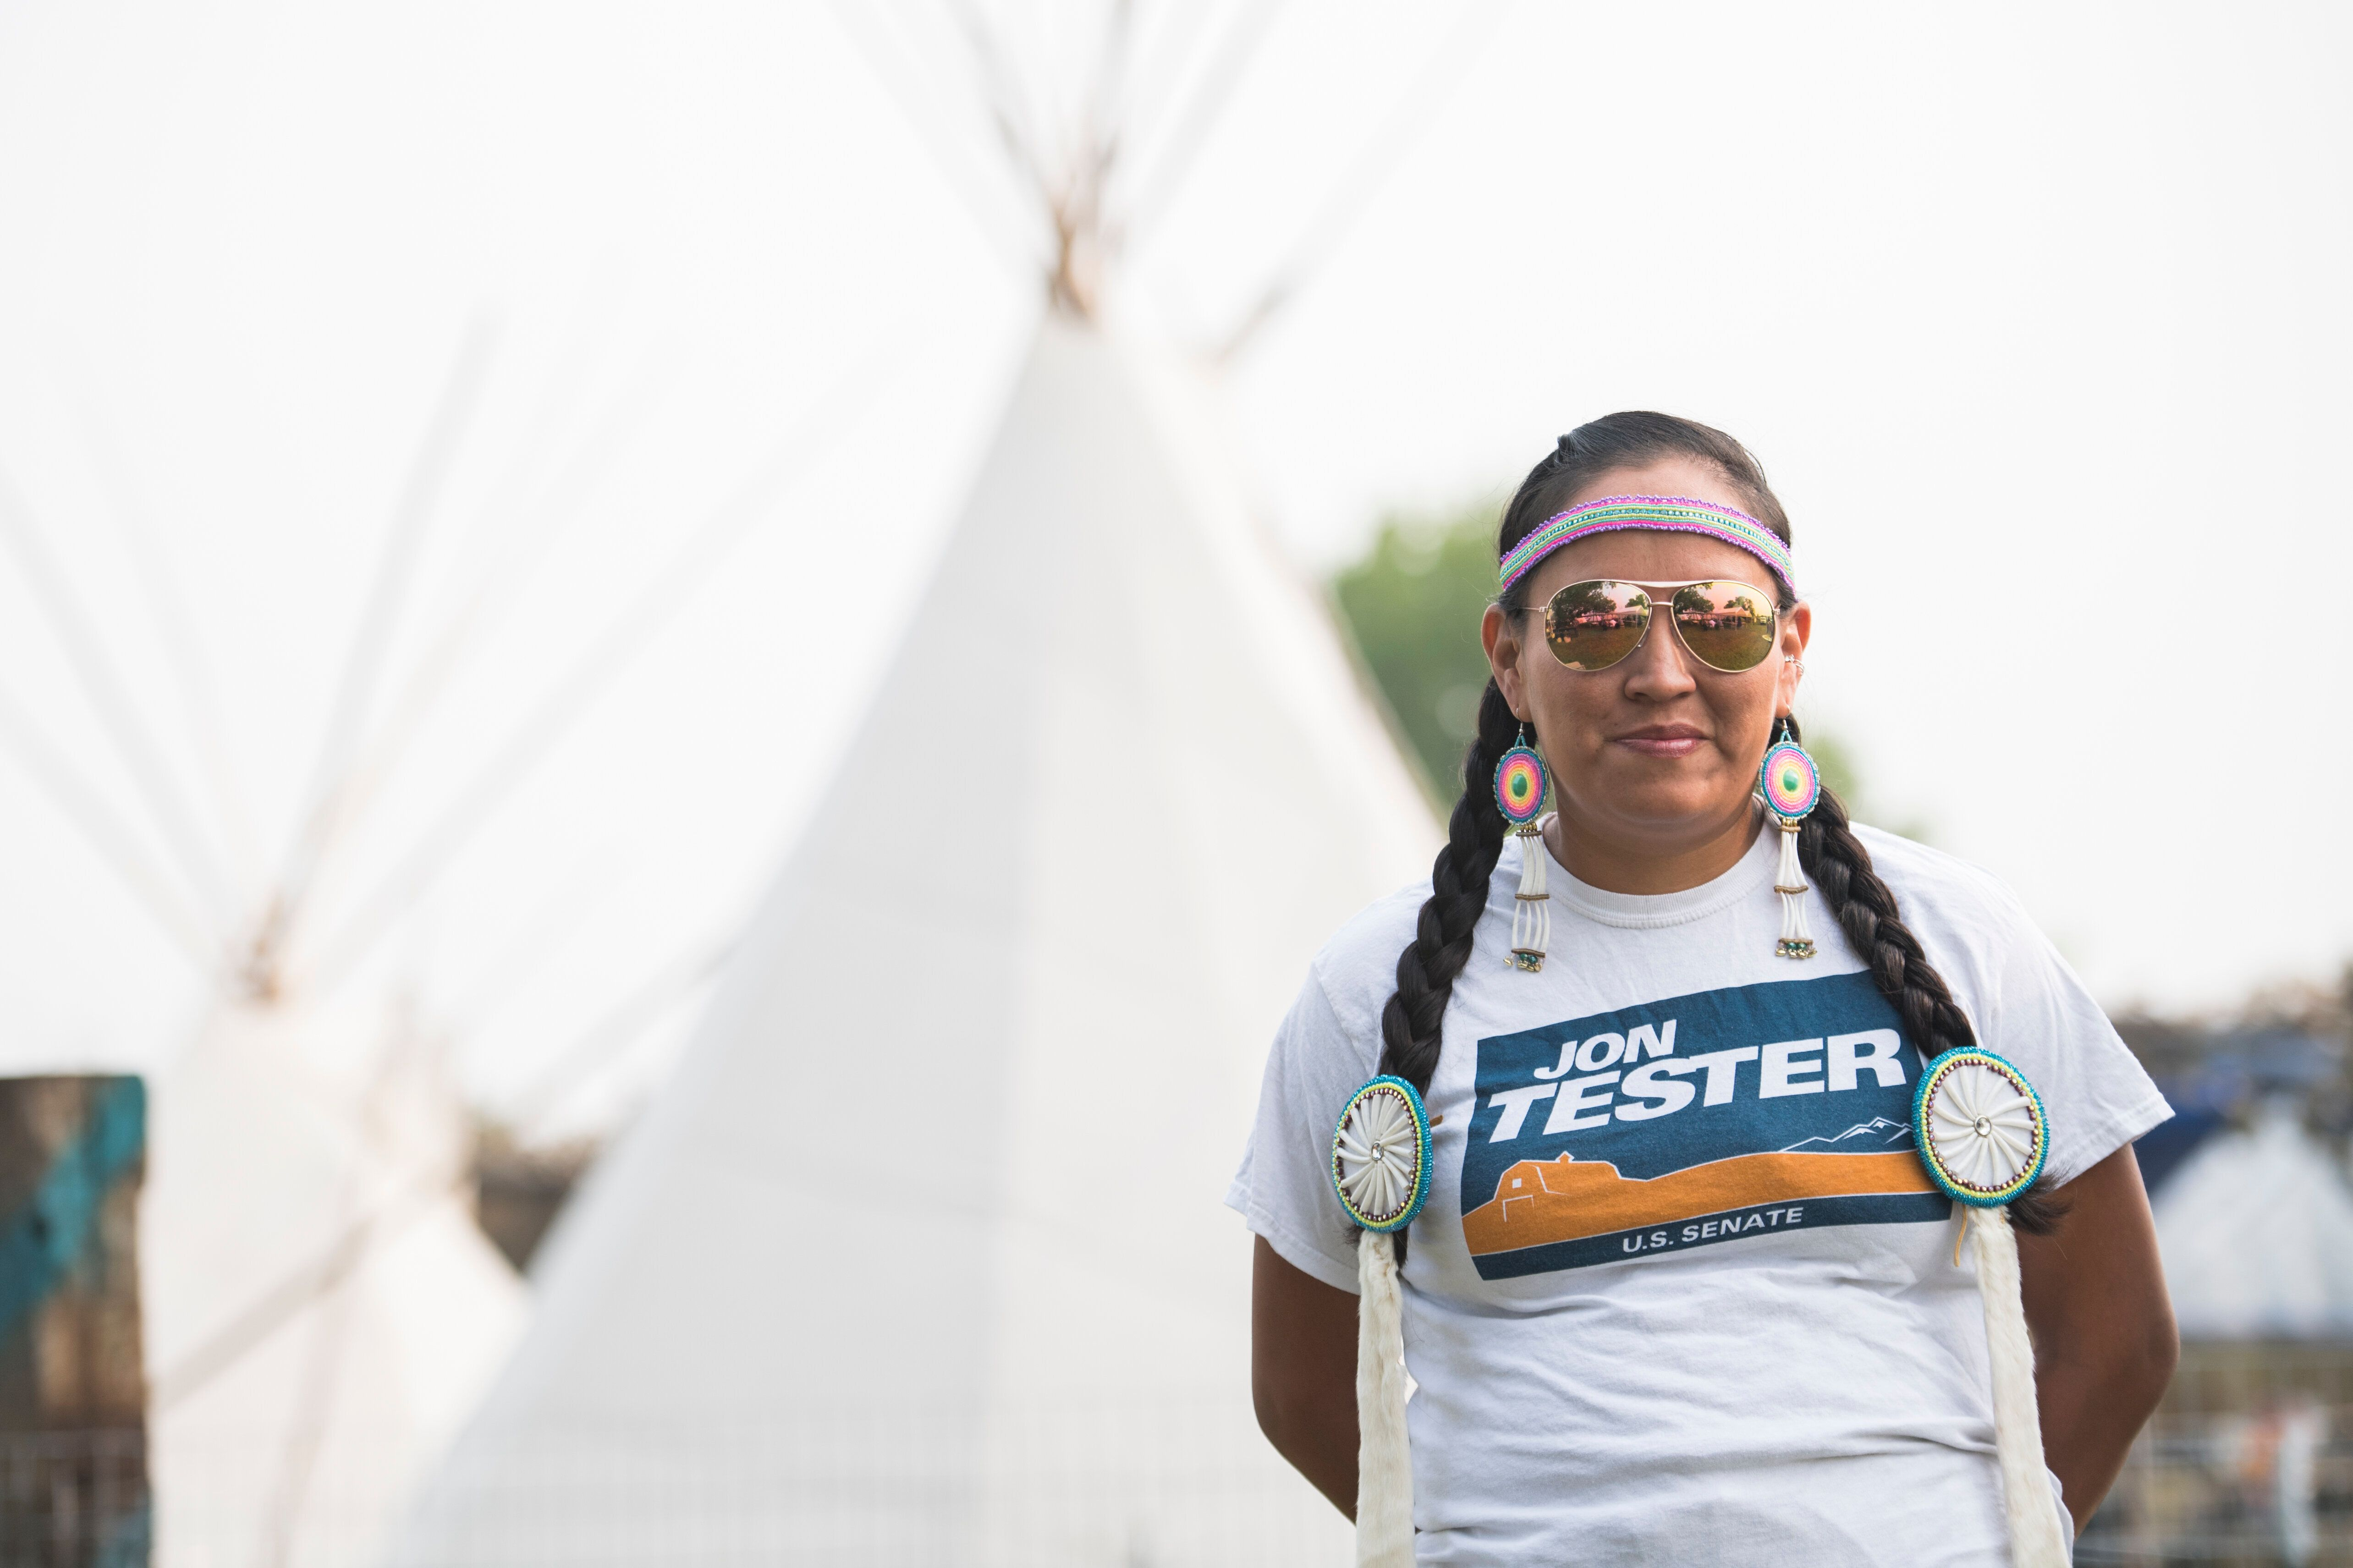 A campaign worker for Sen. Jon Tester (D-Mont.), a co-sponsor of the Native American Rights Act, attends the Crow Fair in Cro